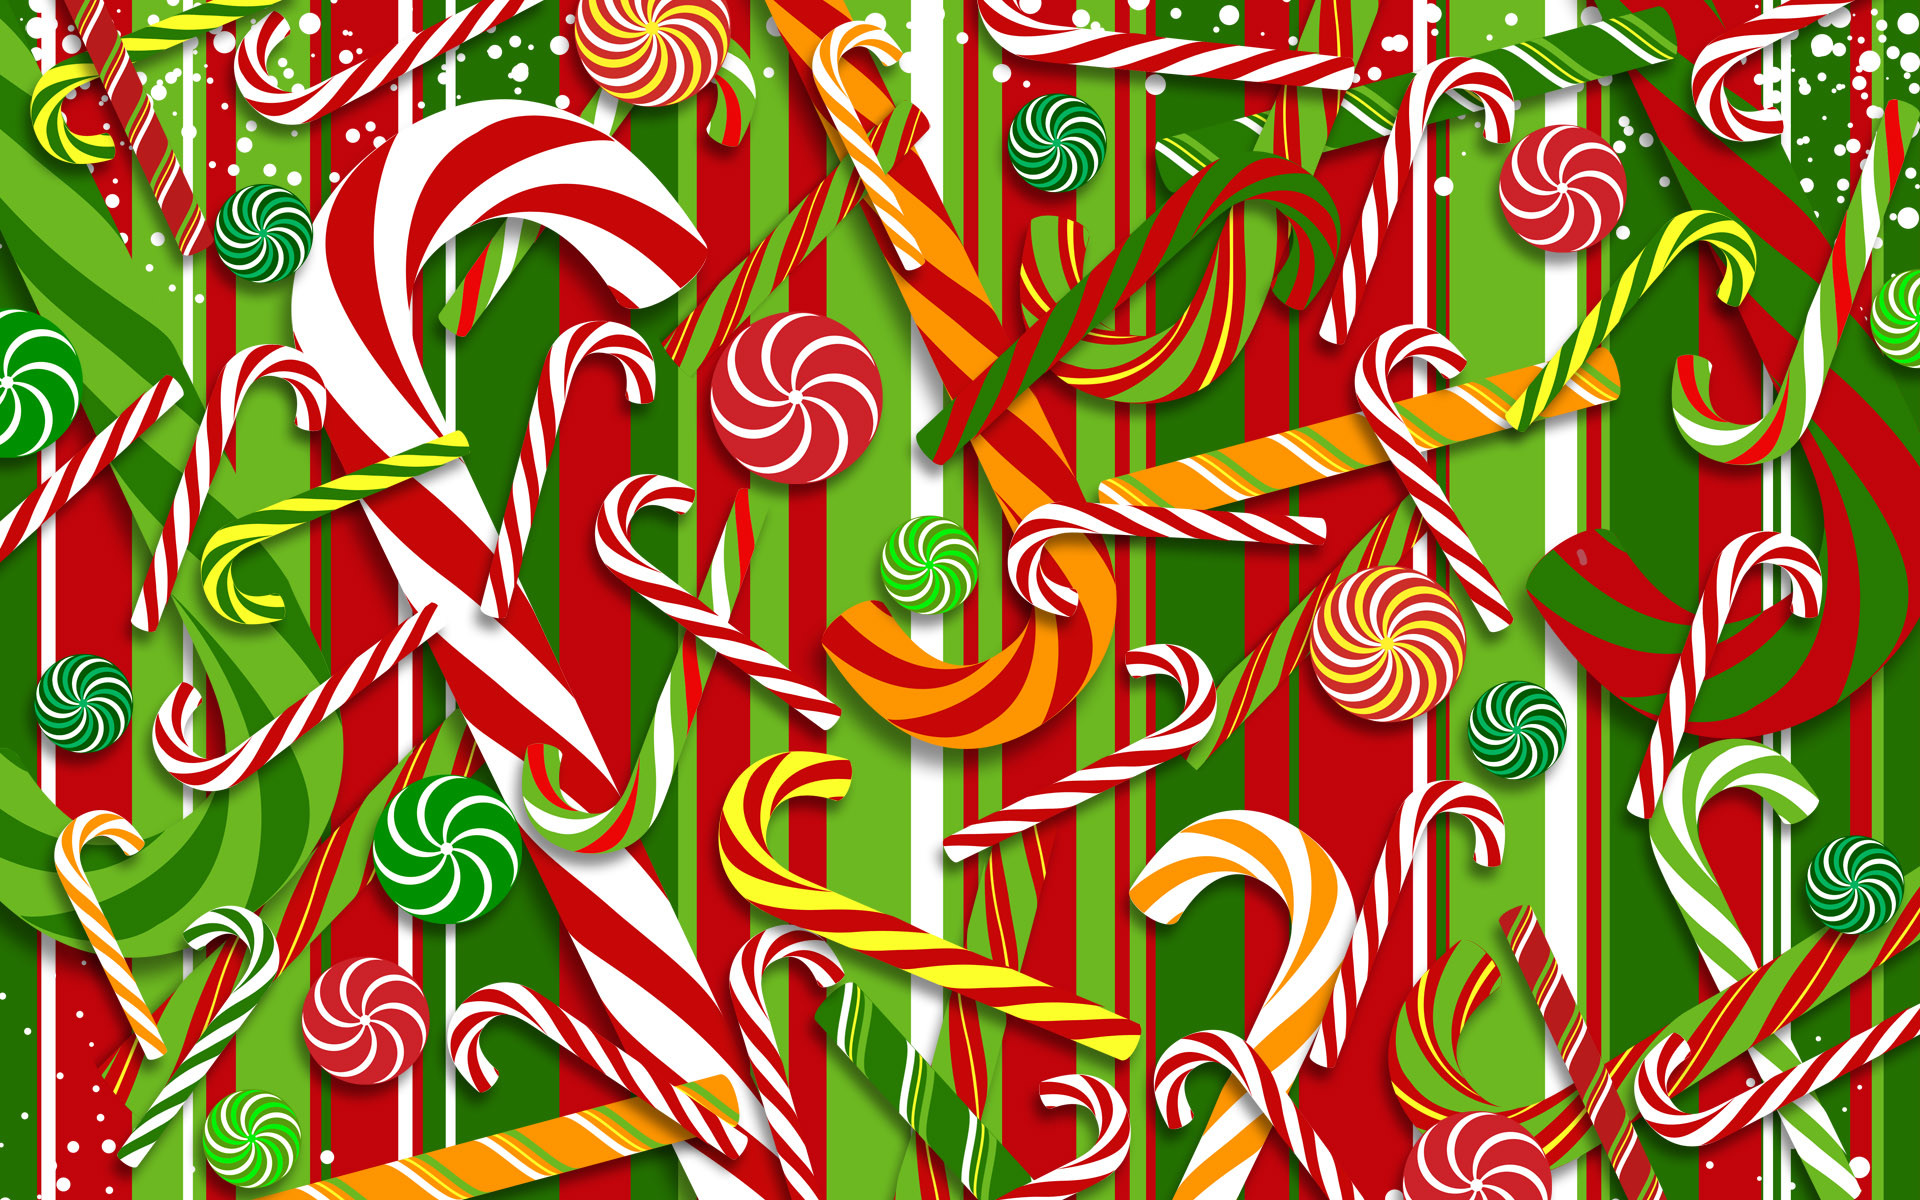 1920x1200 Download Candy Cane Wallpaper 38140